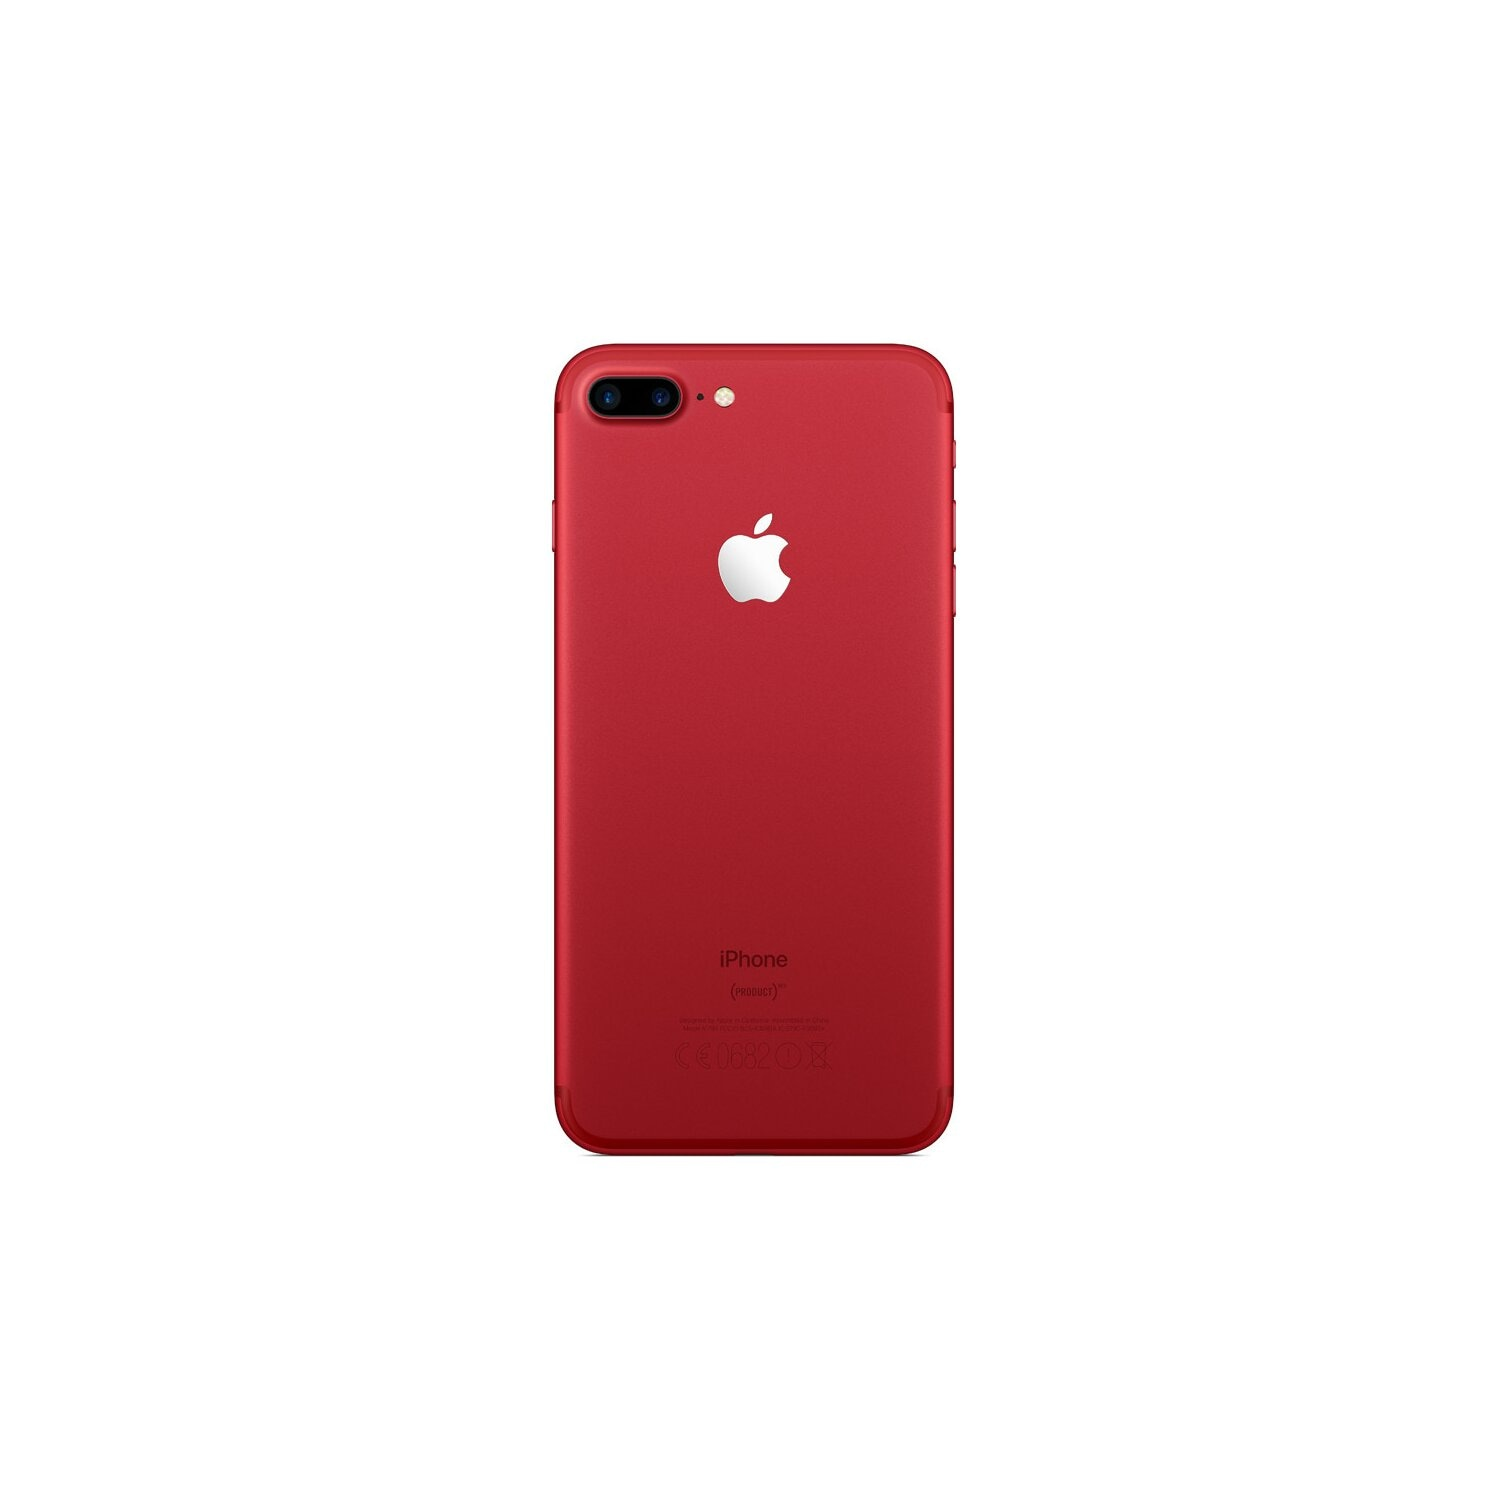 Smartfon Apple Iphone 7 Plus 128gb Productred Special Edition 128 Gb Red